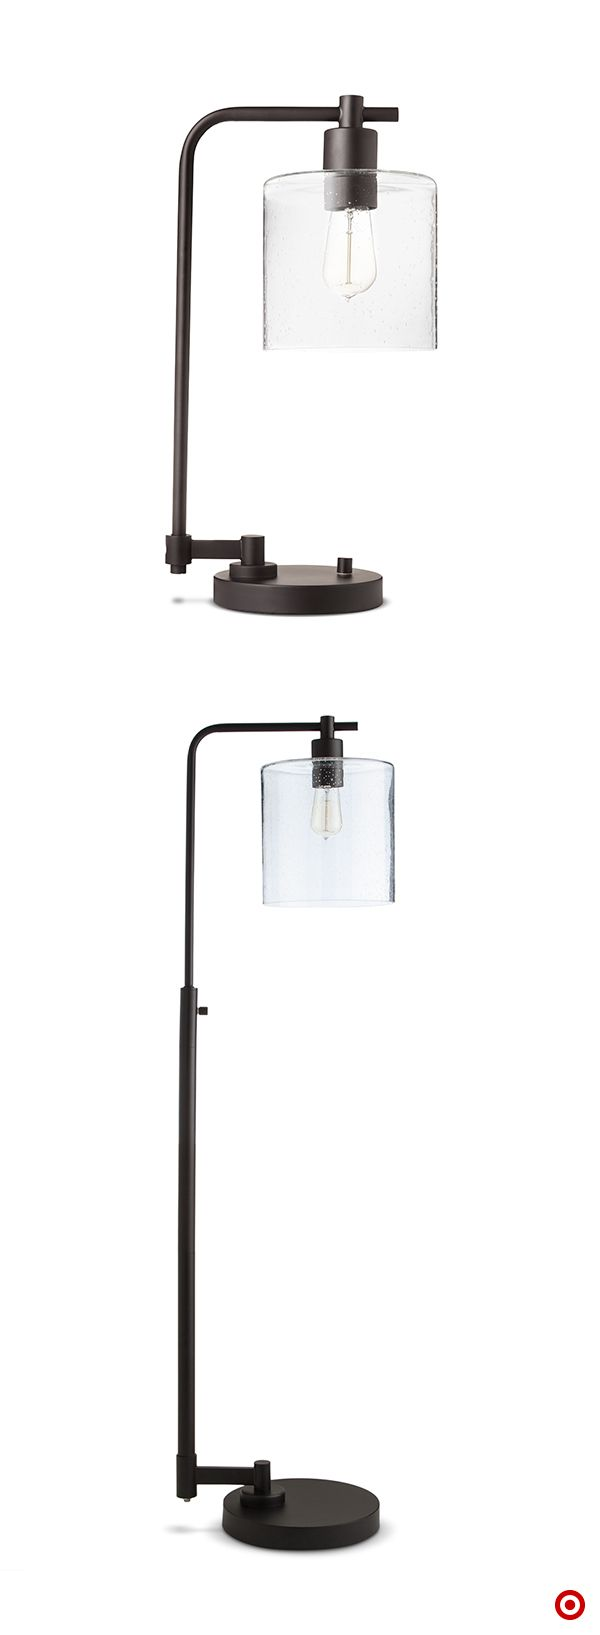 sleek glass and metal lighting is a chic way to turn up edge and style beach style balcony helius lighting group